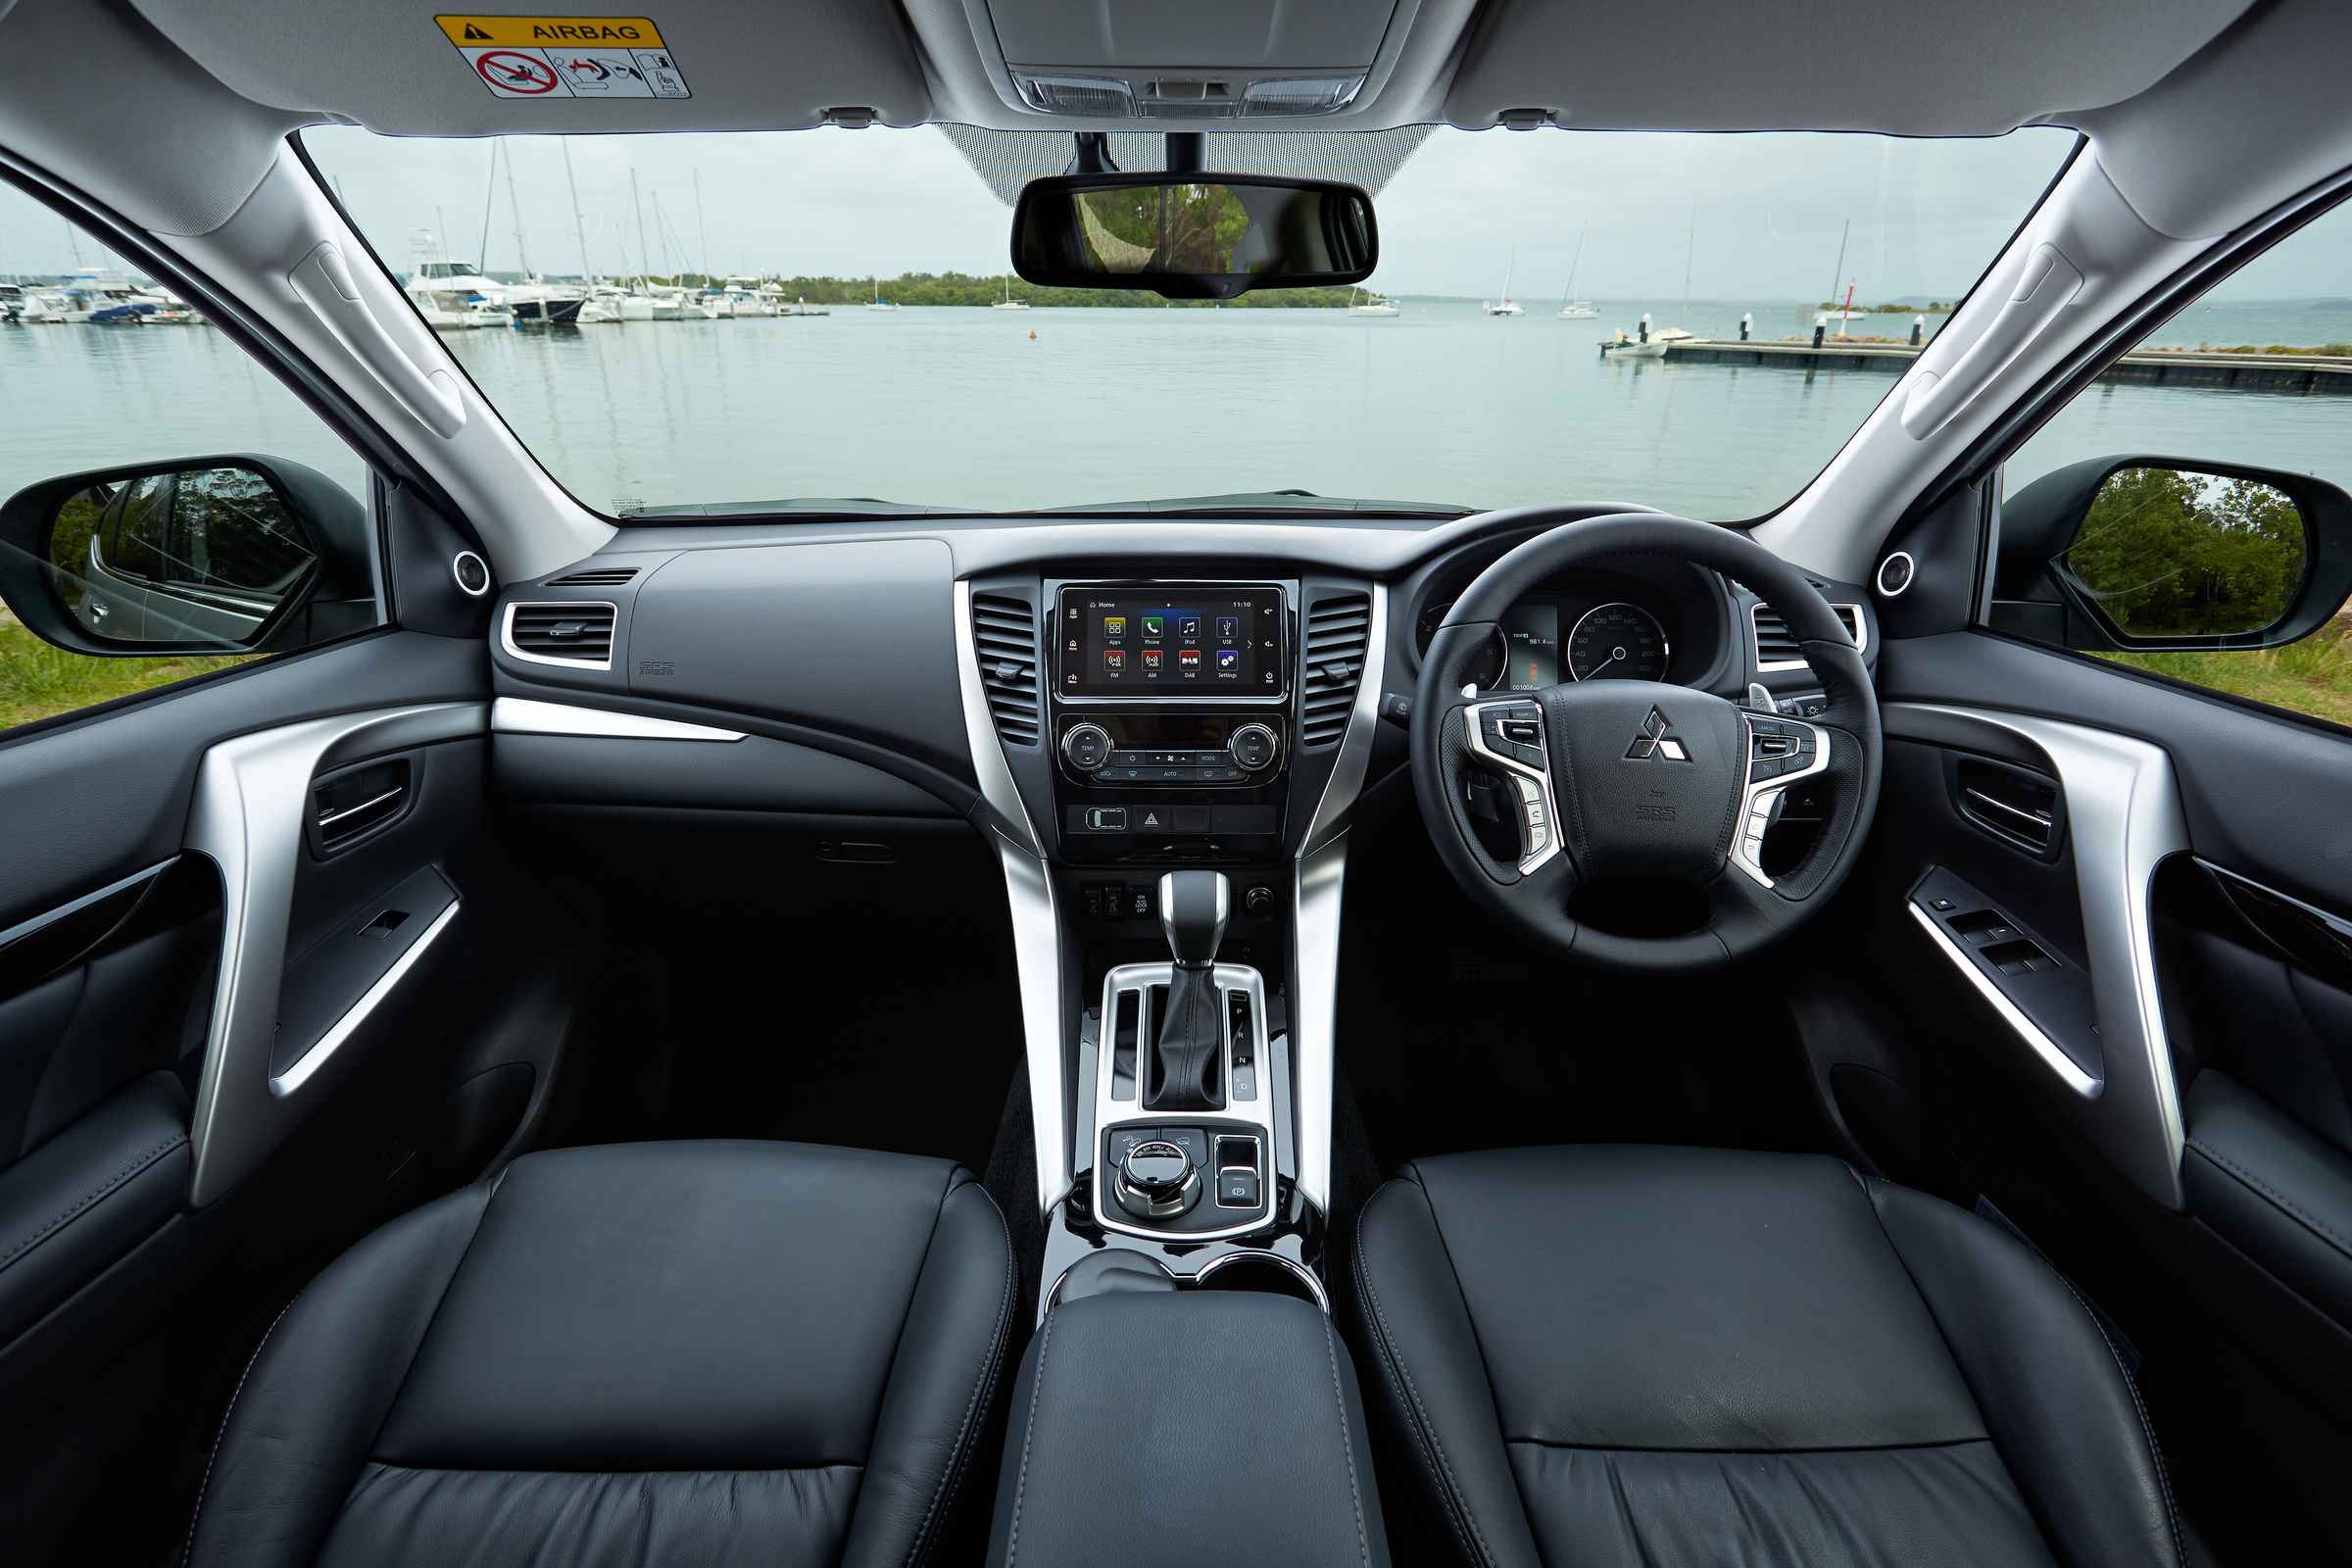 2016 all new mitsubishi pajero sport 7188 cars performance reviews and test drive. Black Bedroom Furniture Sets. Home Design Ideas